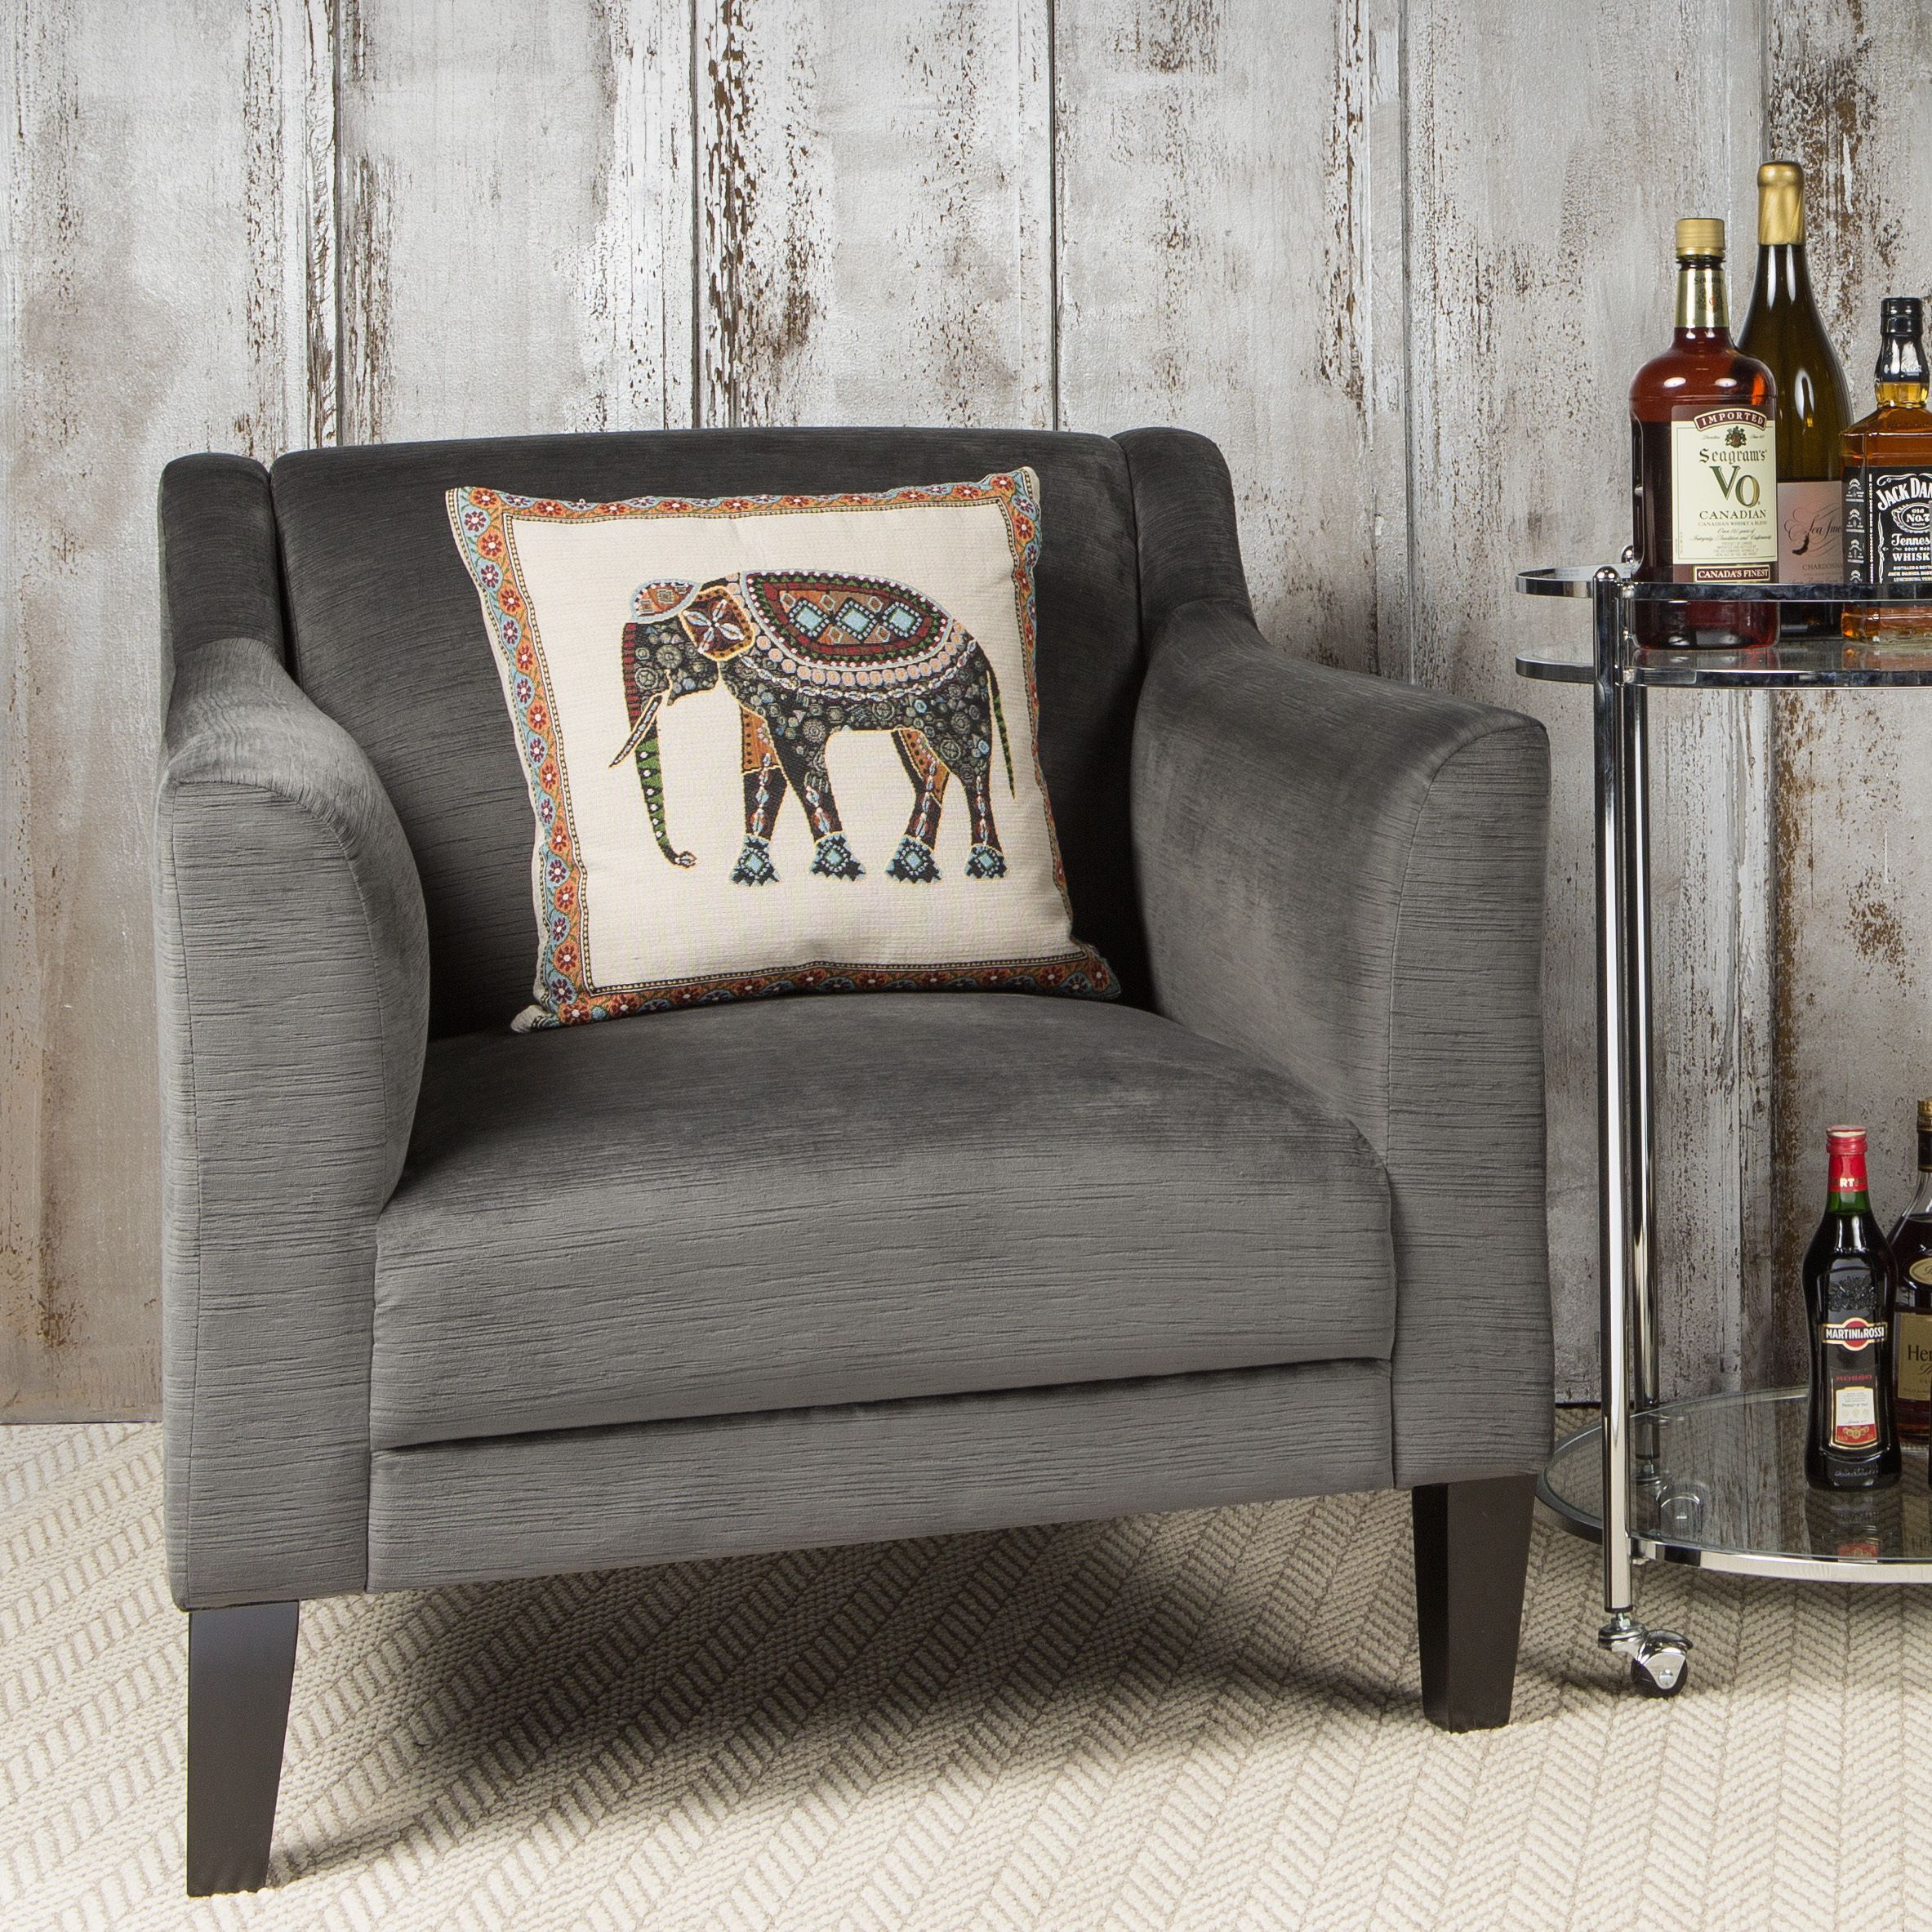 Studio Designs Home Grotto Arm Chair Grotto Arm Chair  Empire Brilliant Chair Designs For Living Room Design Decoration